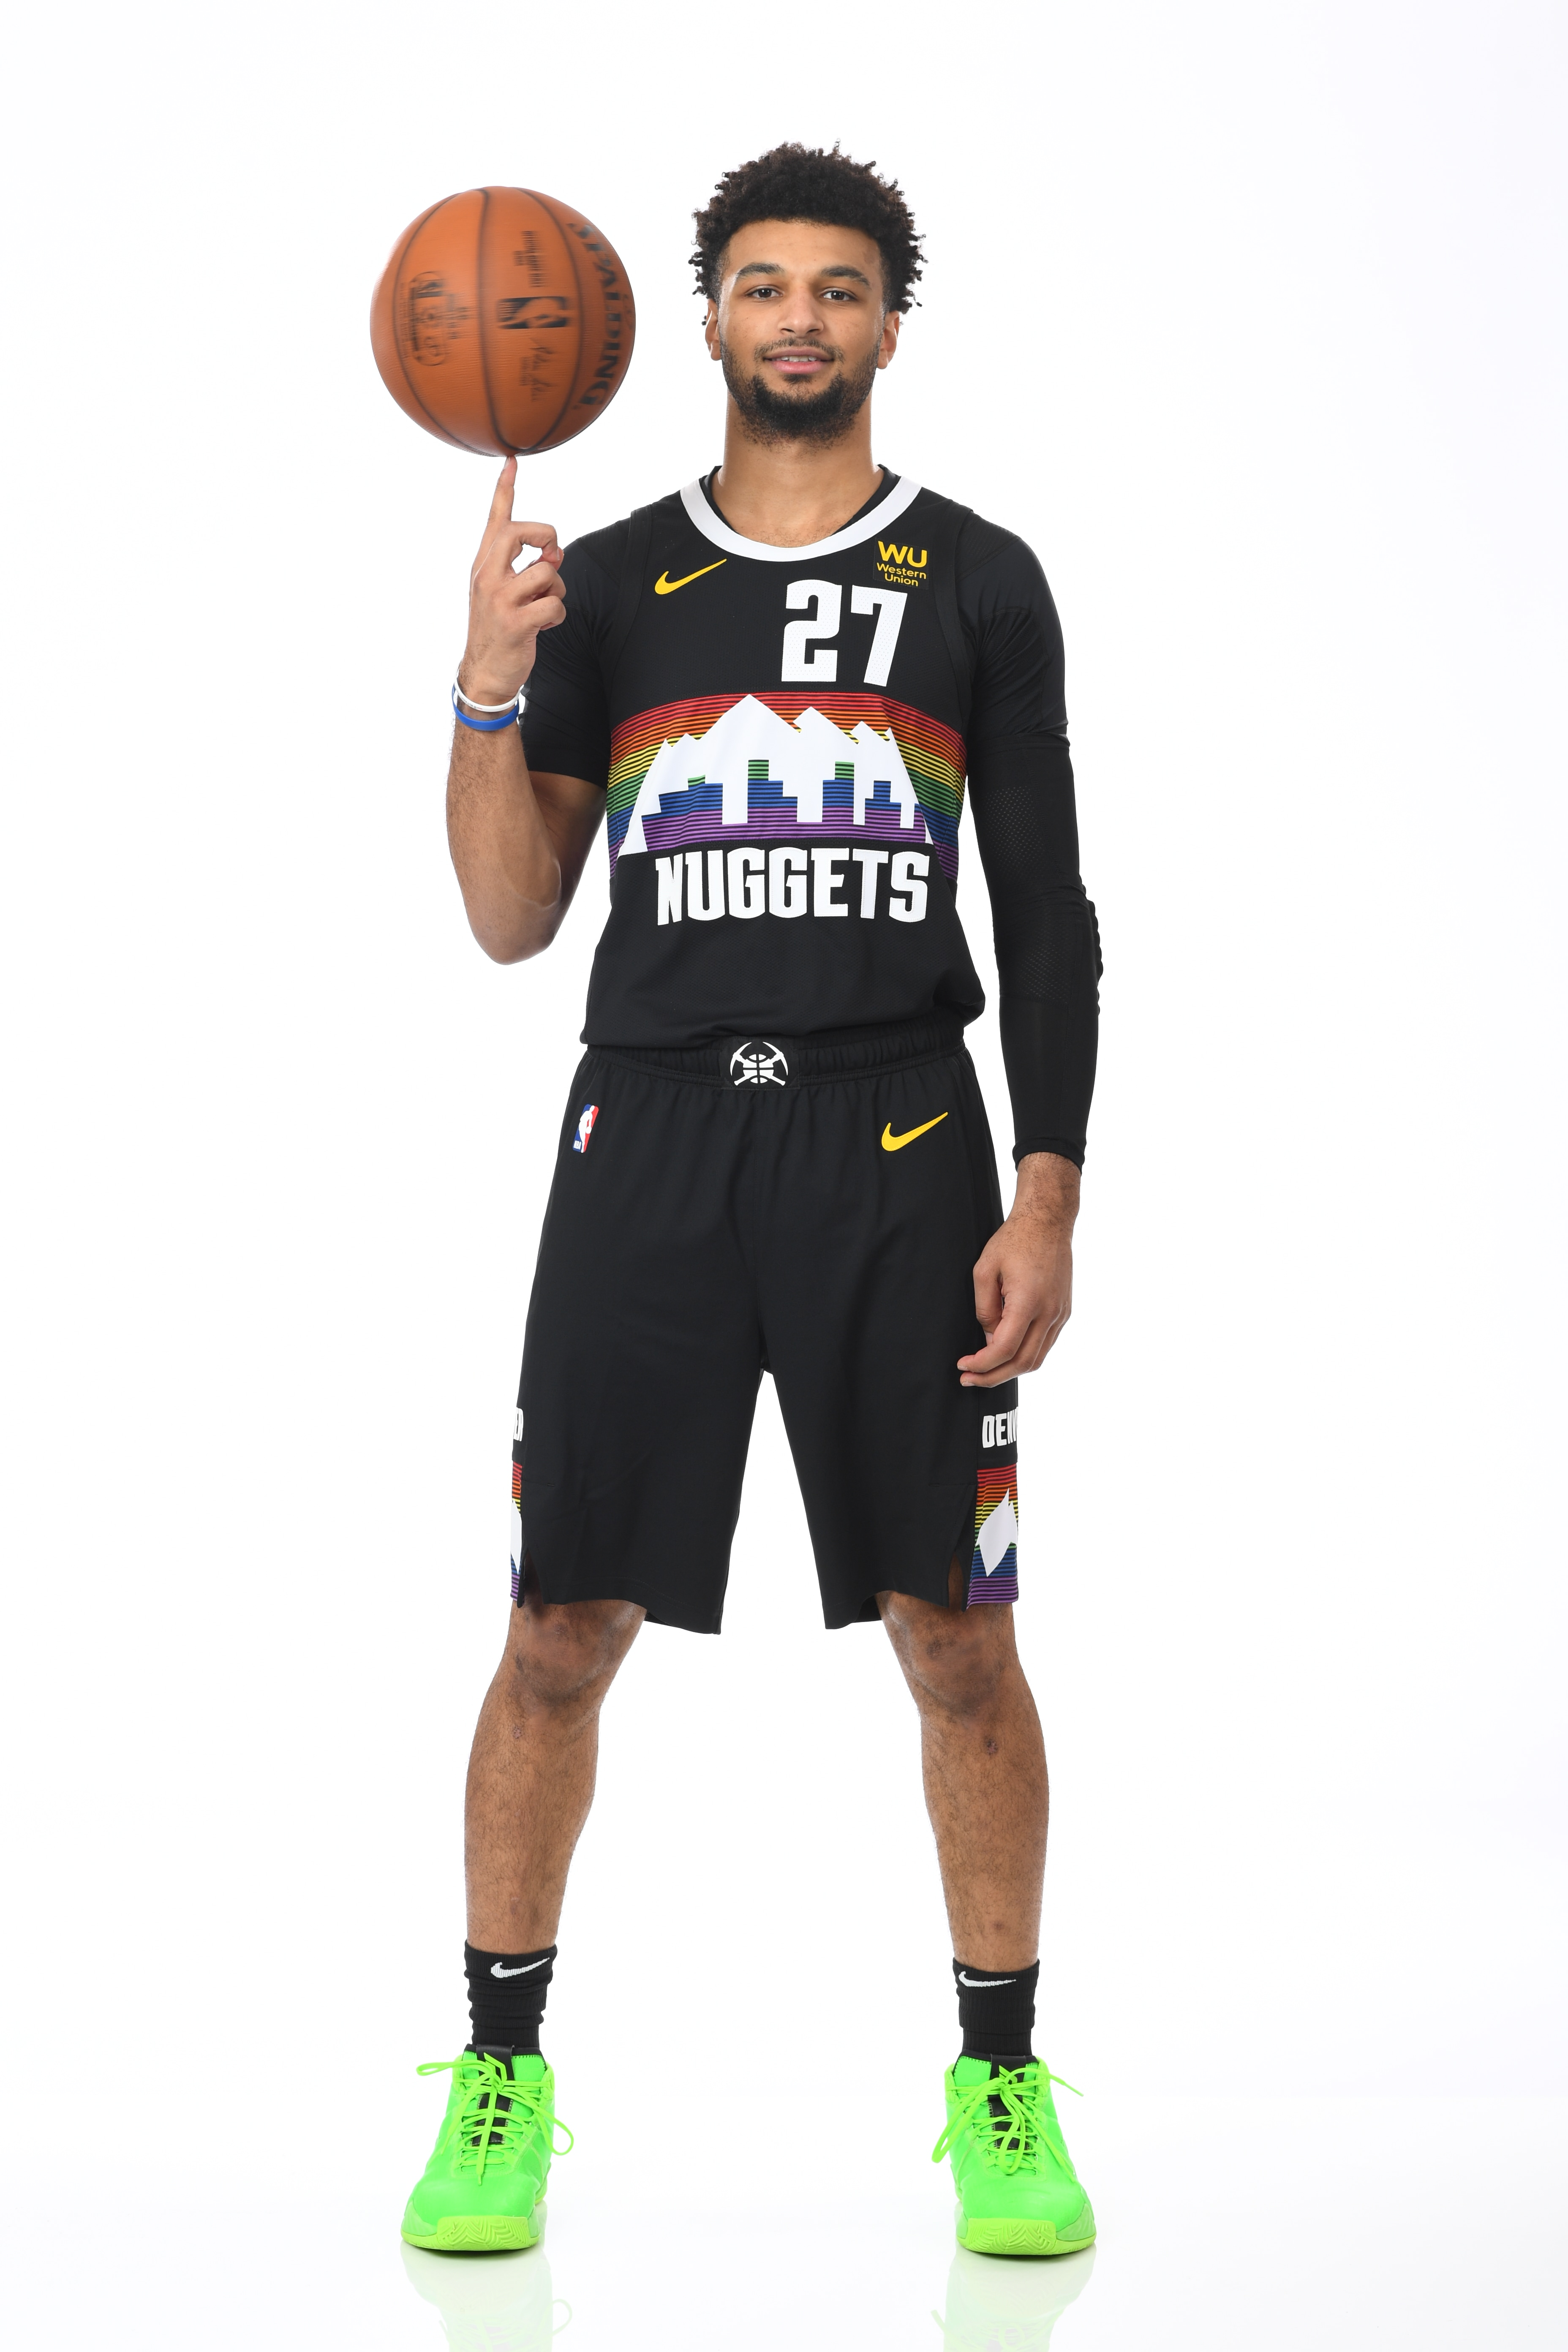 Several Nuggets players showcase the new City Edition jerseys for the 2019-20 season.